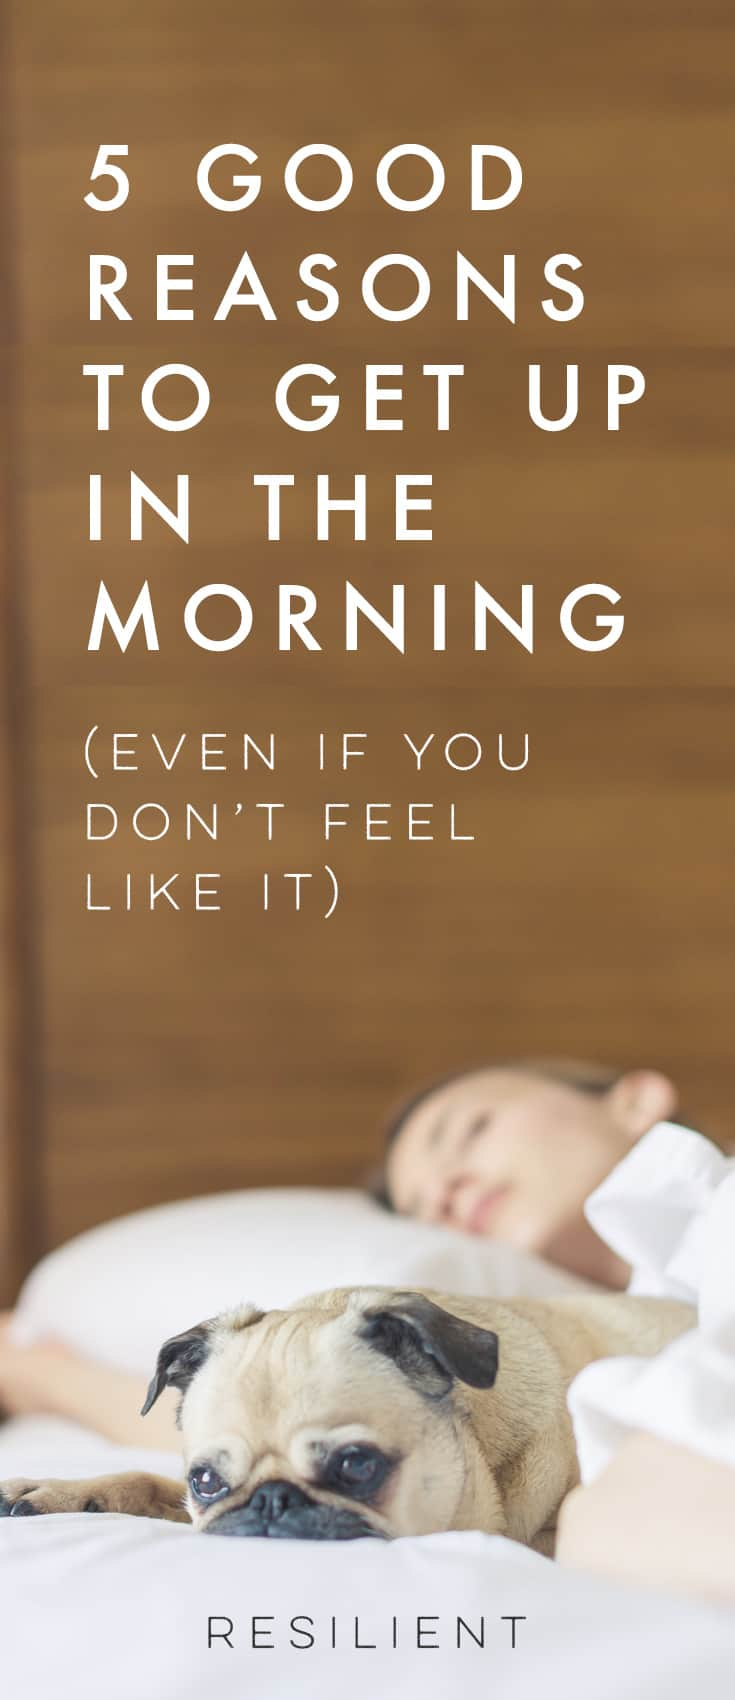 Next time you're thinking of staying in bed for no particular reason, think again. Climbing out of your warm, cozy bed can take willpower, especially if you're feeling anxious or down in the dumps. But it's worth making the effort for all sorts of reasons. Here are five irresistible reasons to get up in the morning if you need a little encouragement.